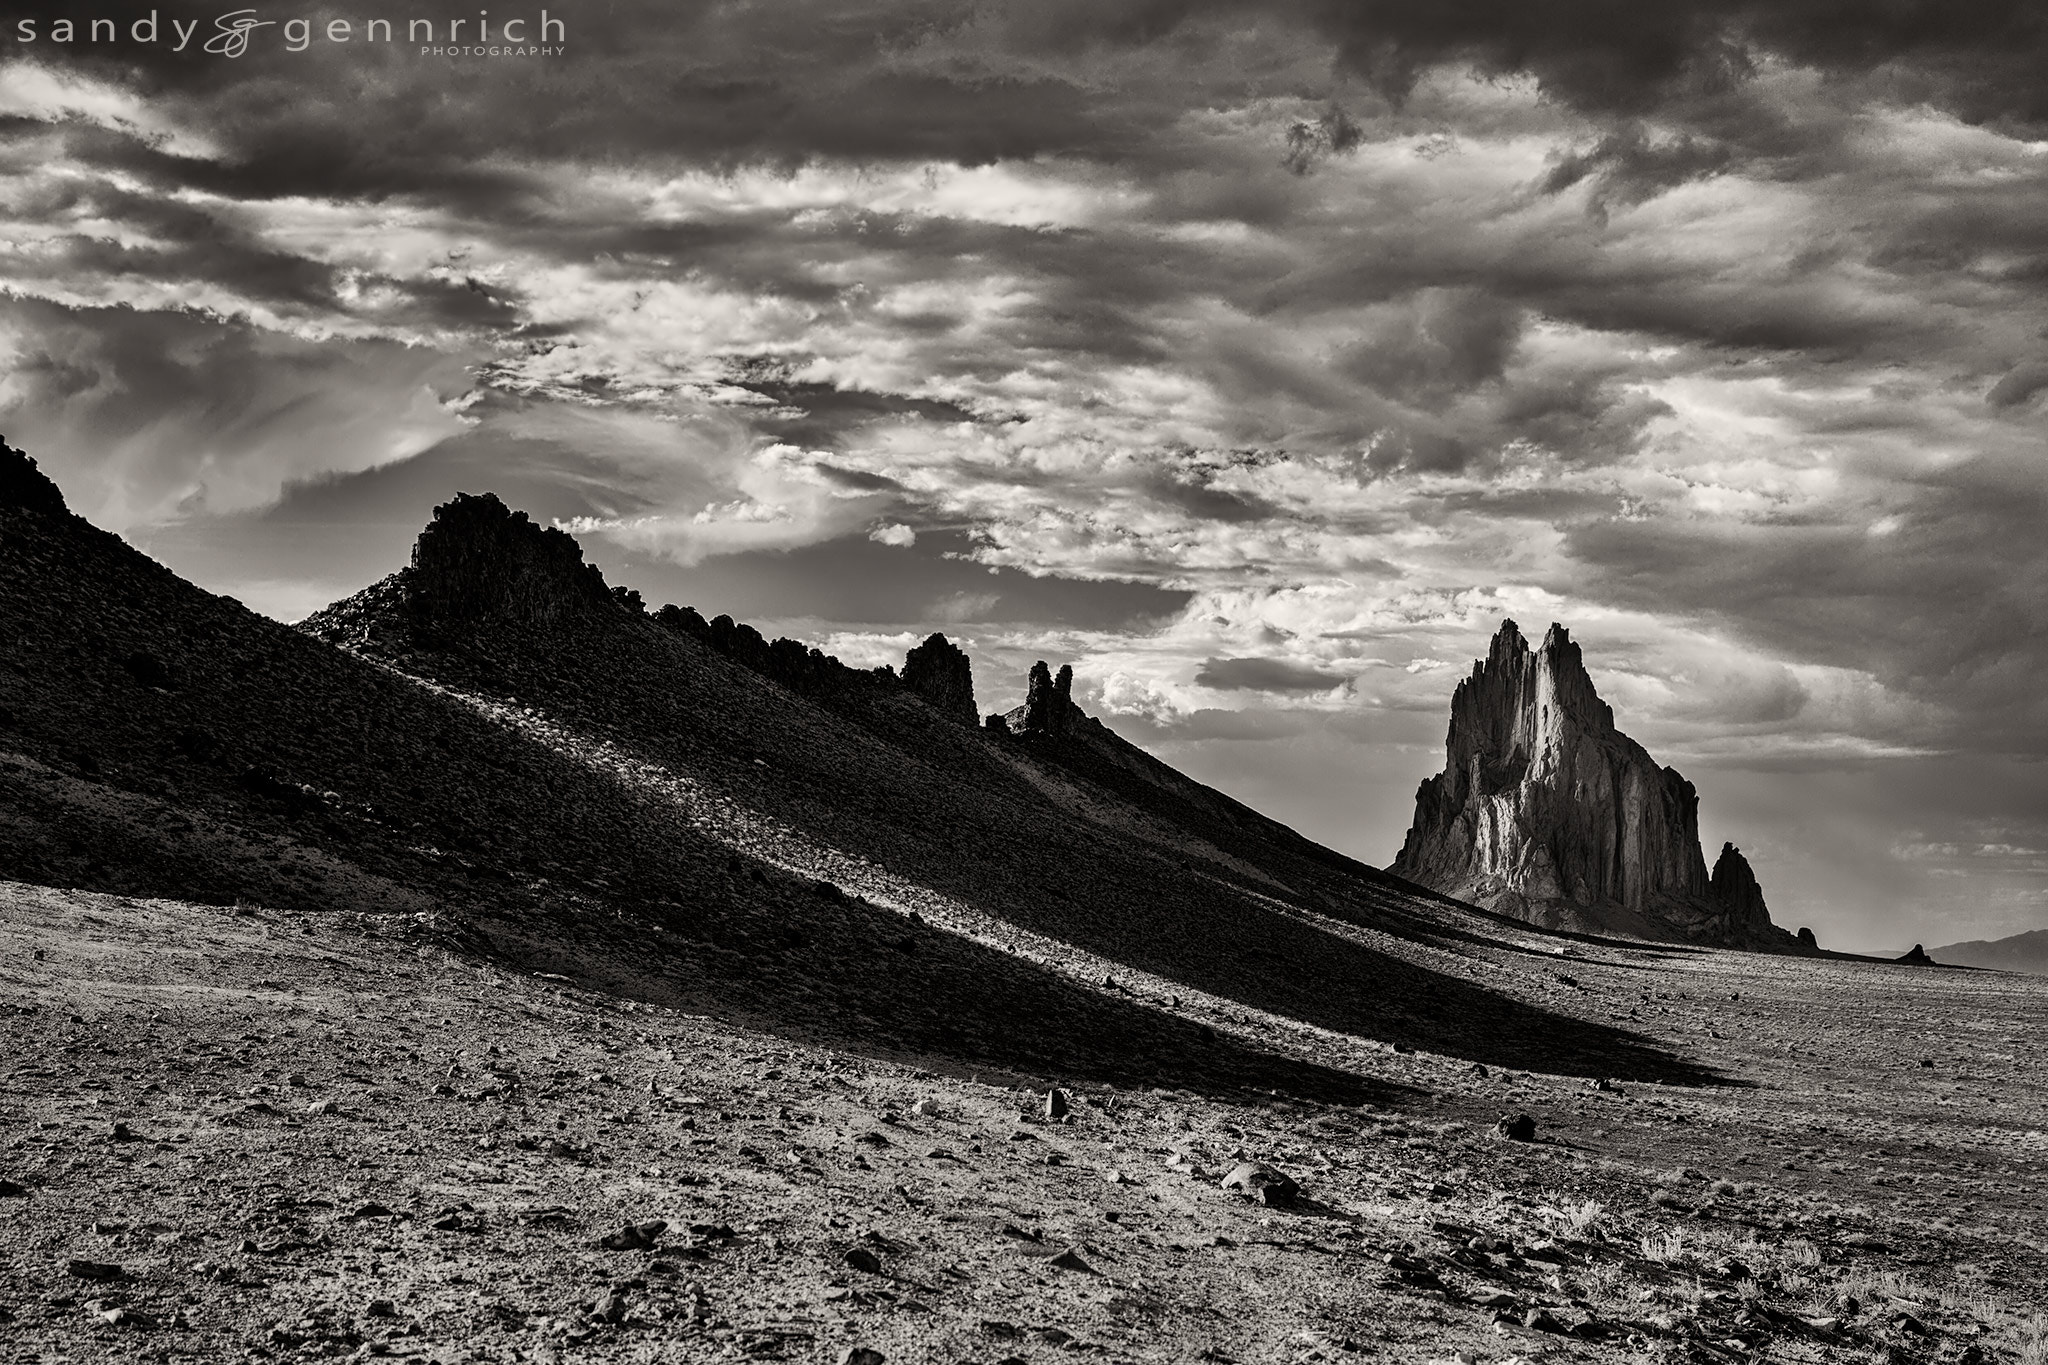 Photograph Shiprock and Shadows - Farmington NM by Sandy Gennrich on 500px